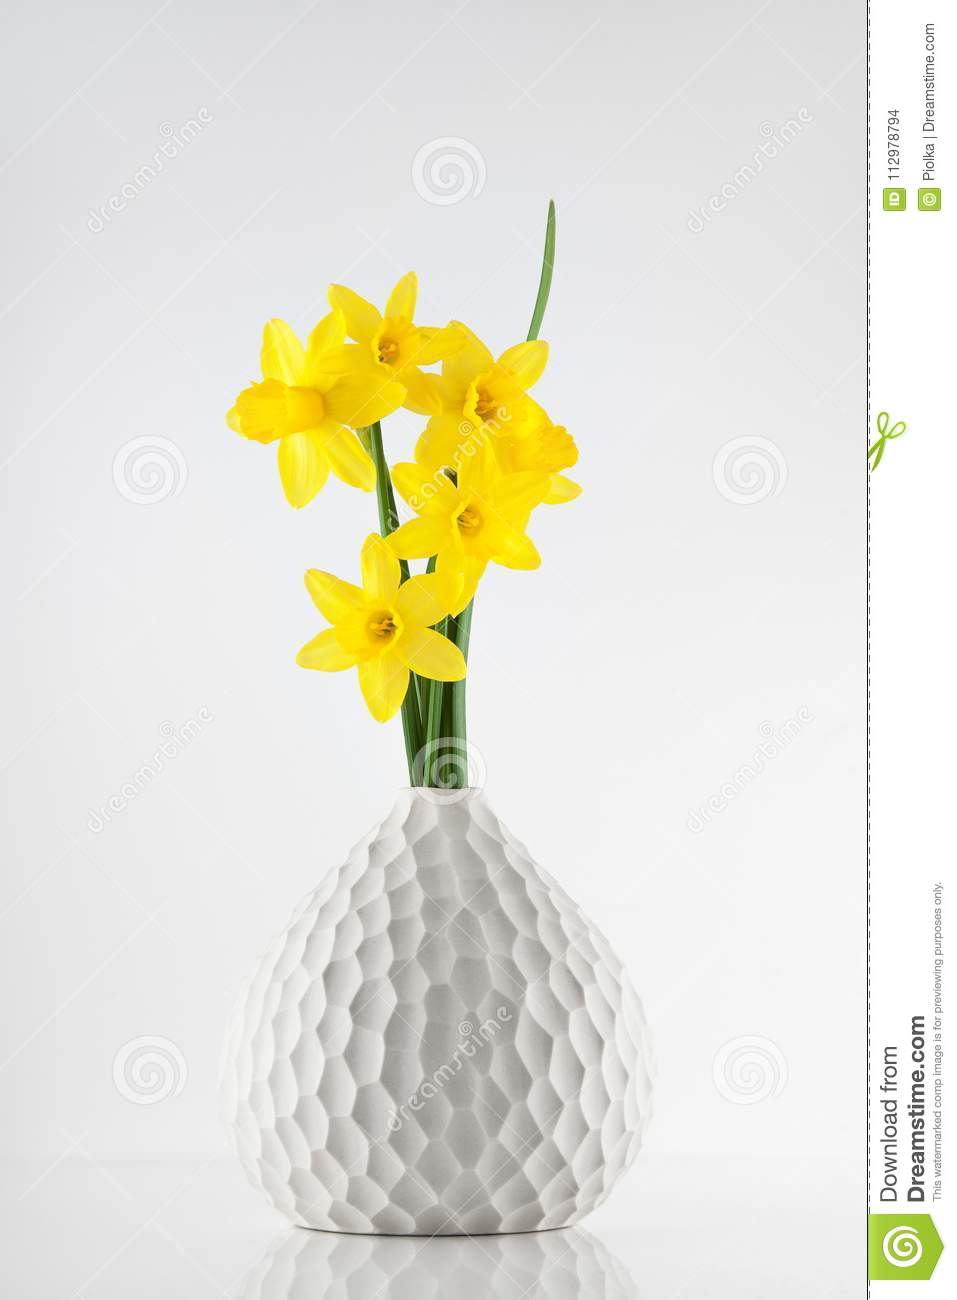 Little bright yellow Daffodils in a vase on white kitchen table